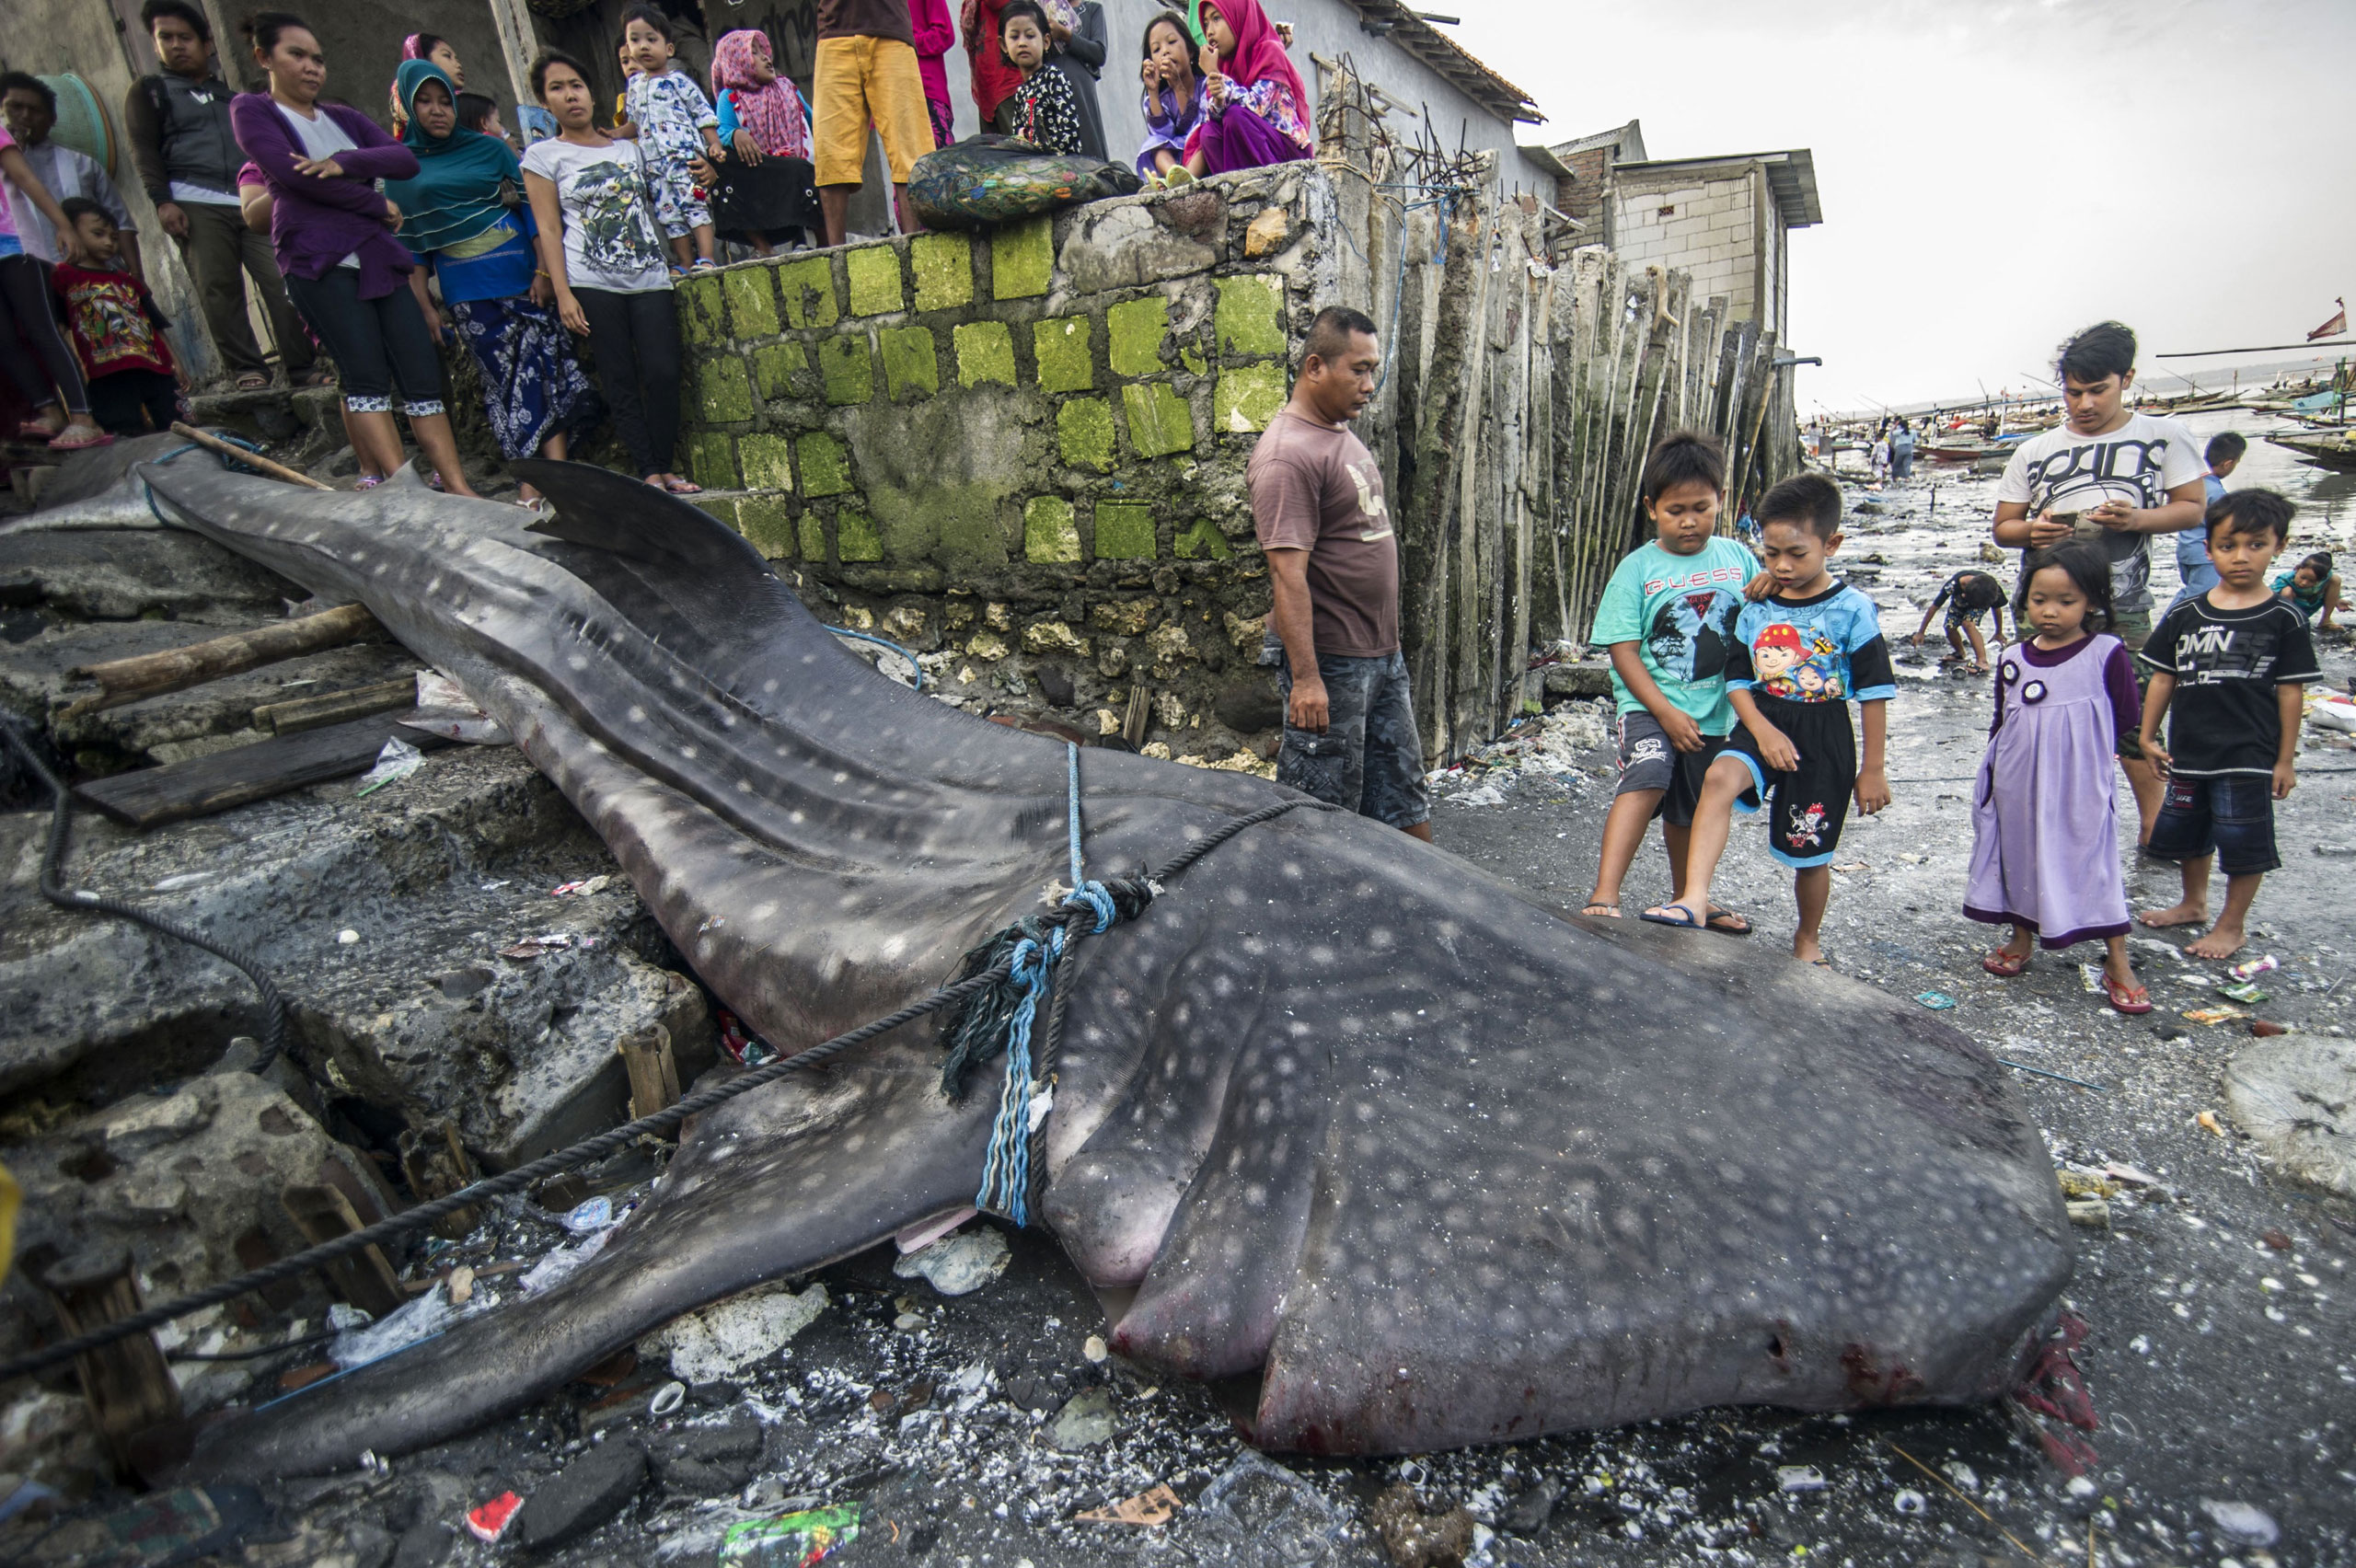 Locals gather around the carcass of a dead whale shark, caught by fishermen in the sea off of Surabaya, on the East Java island, Indonesia, Oct. 12, 2015.